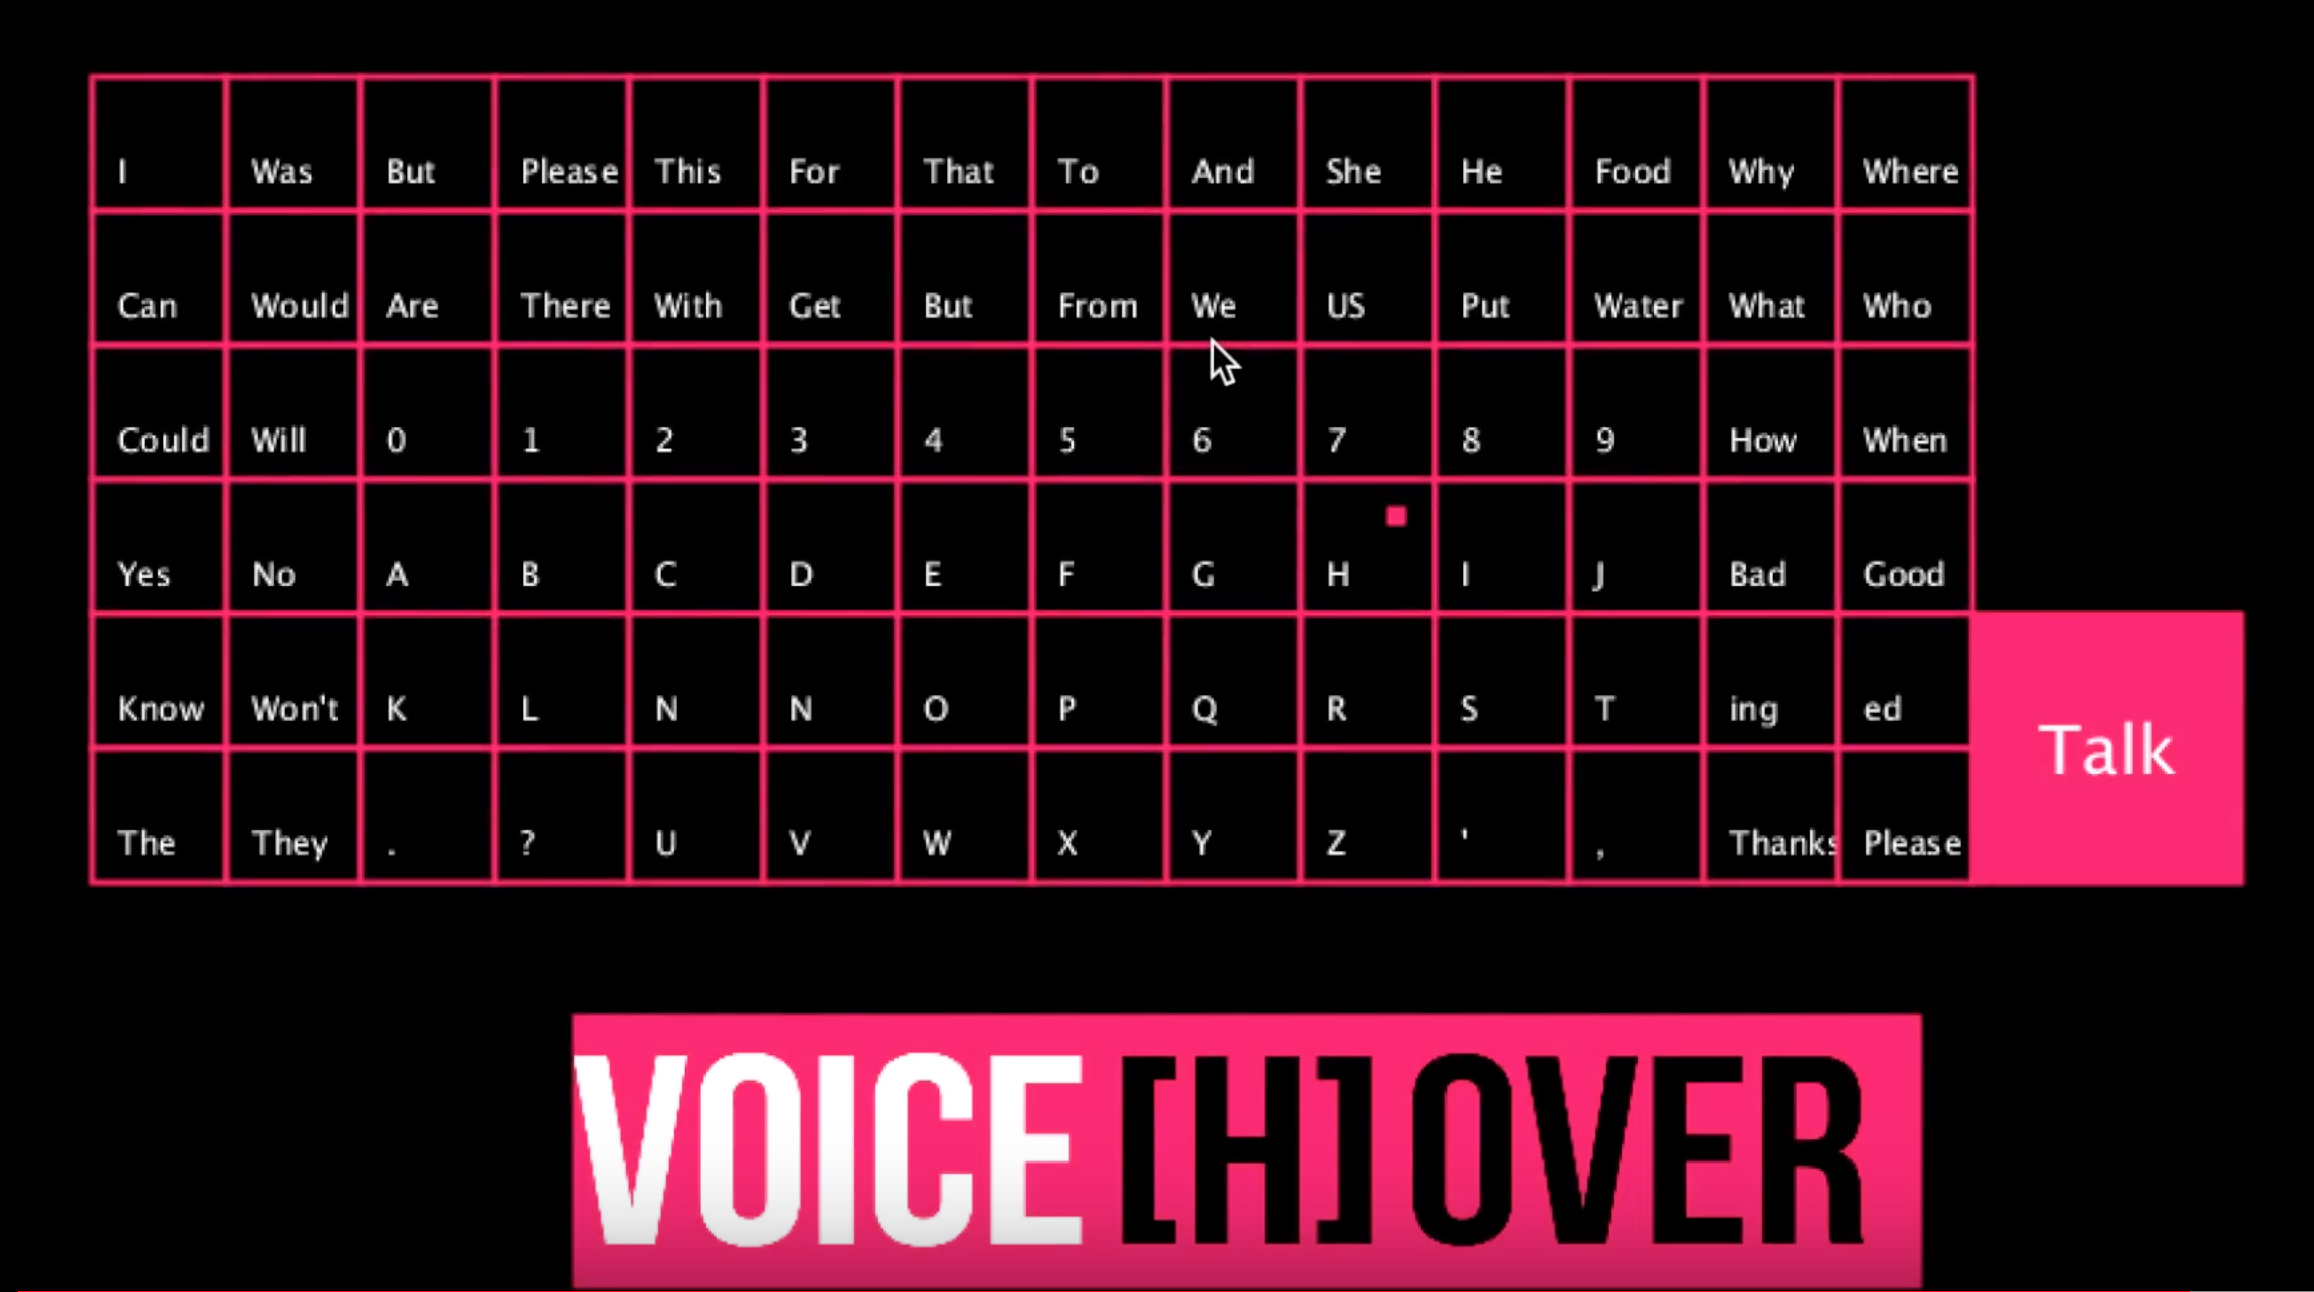 VoiceHover